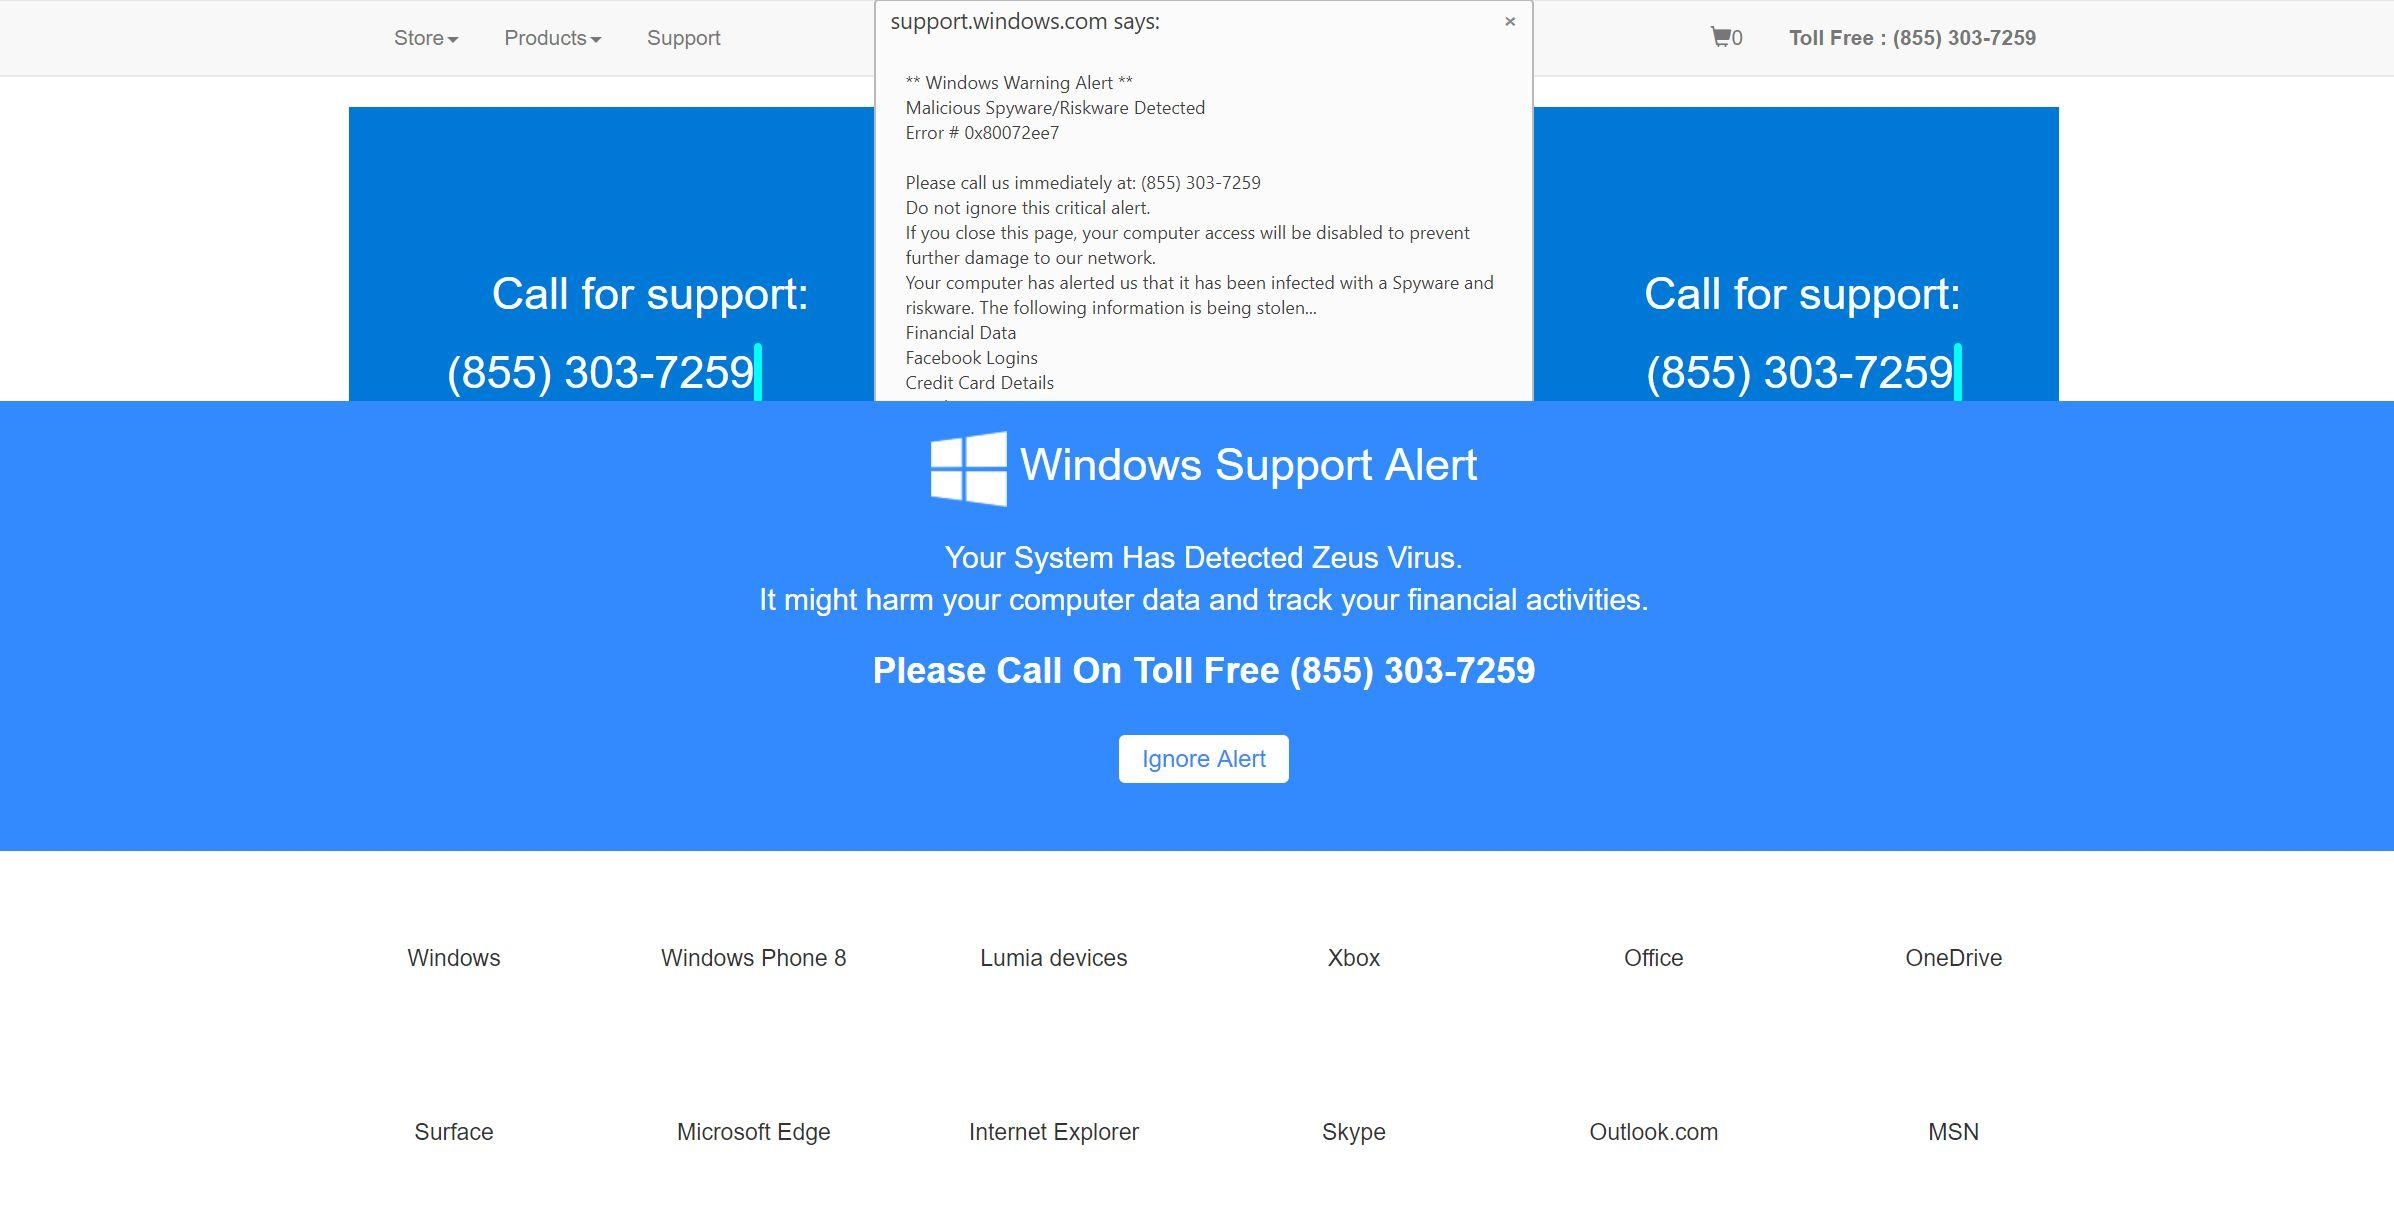 Image: Your computer has been Locked to prevent damage - Tech Support Scam